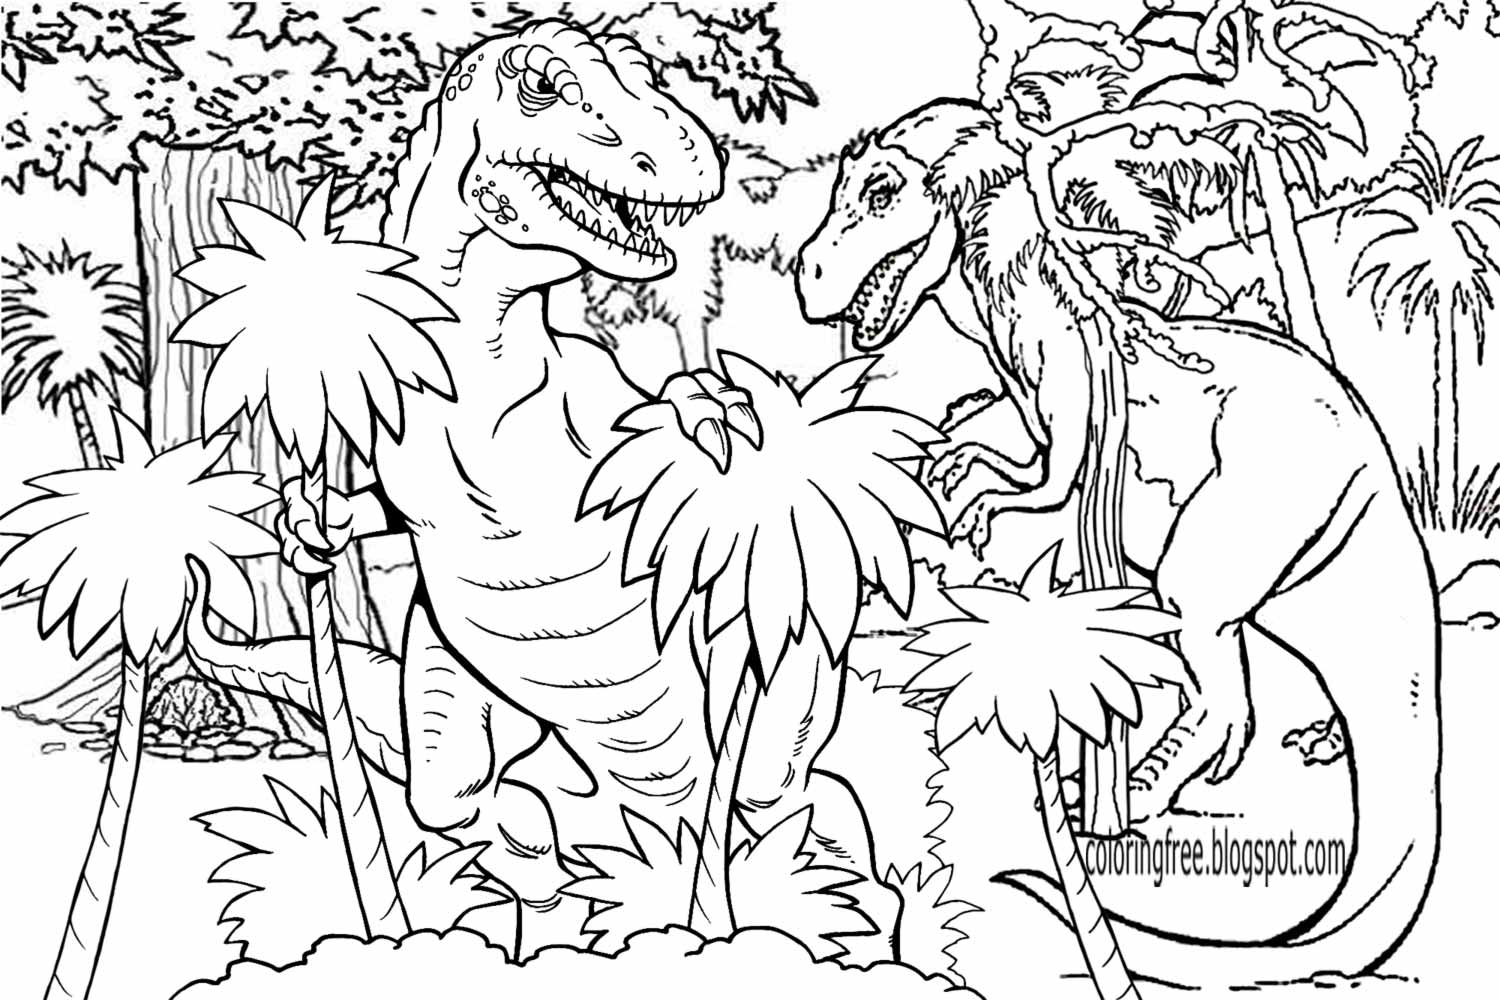 dinosaurs colouring pages dinosaurs to print triceratops dinosaurs kids coloring pages colouring dinosaurs